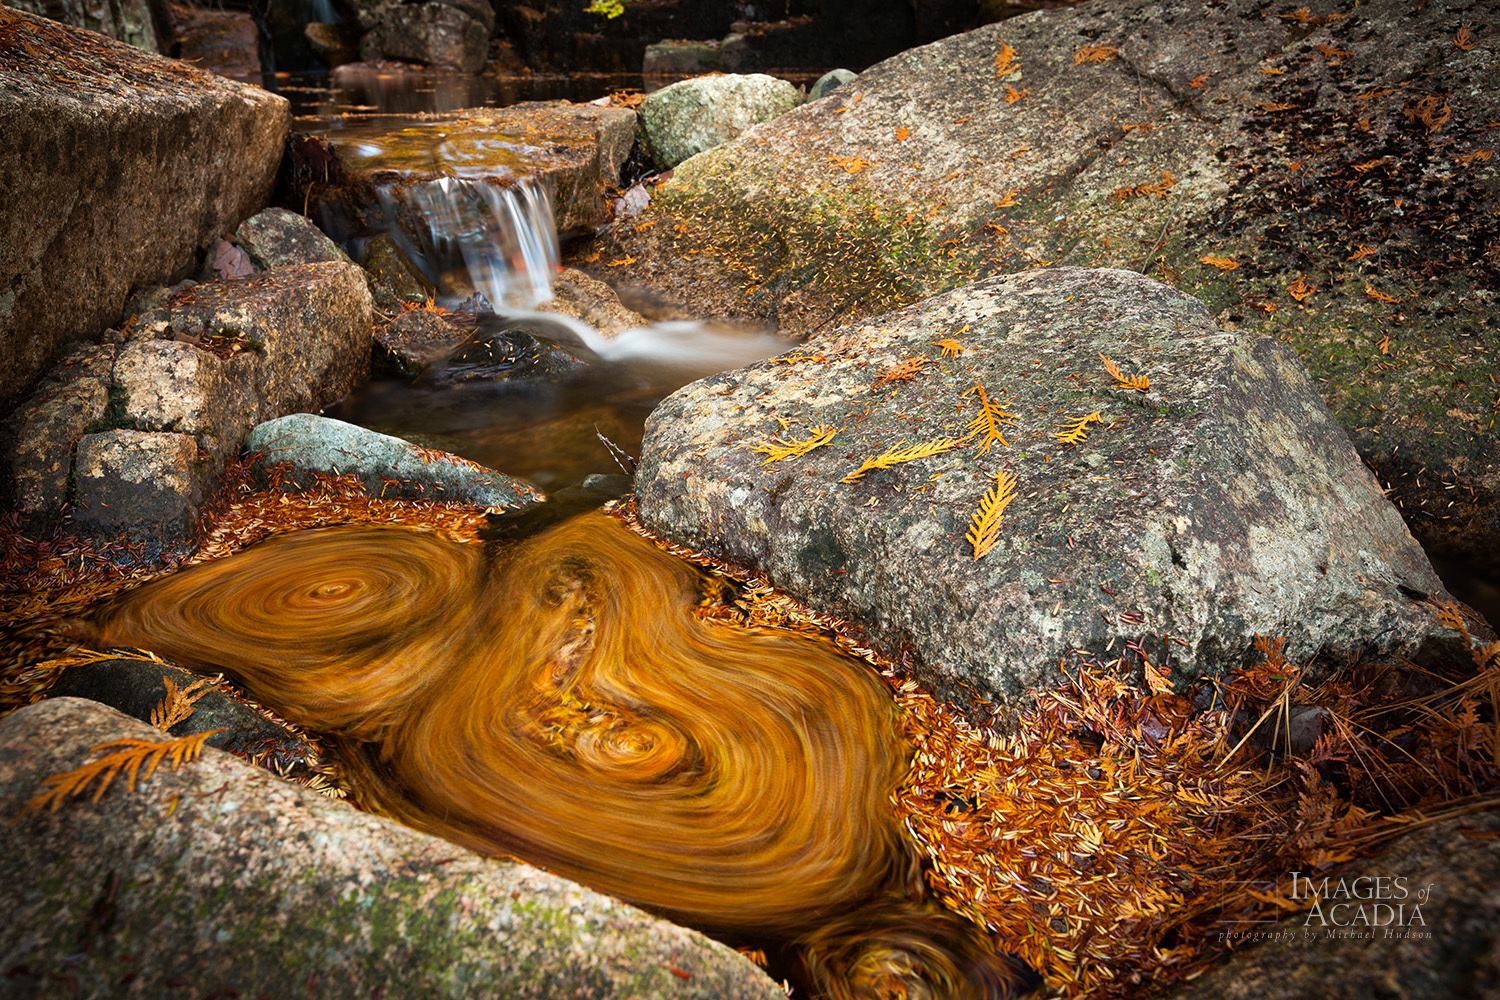 Pine needles swirling in a small pool of water in Whitecap Stream